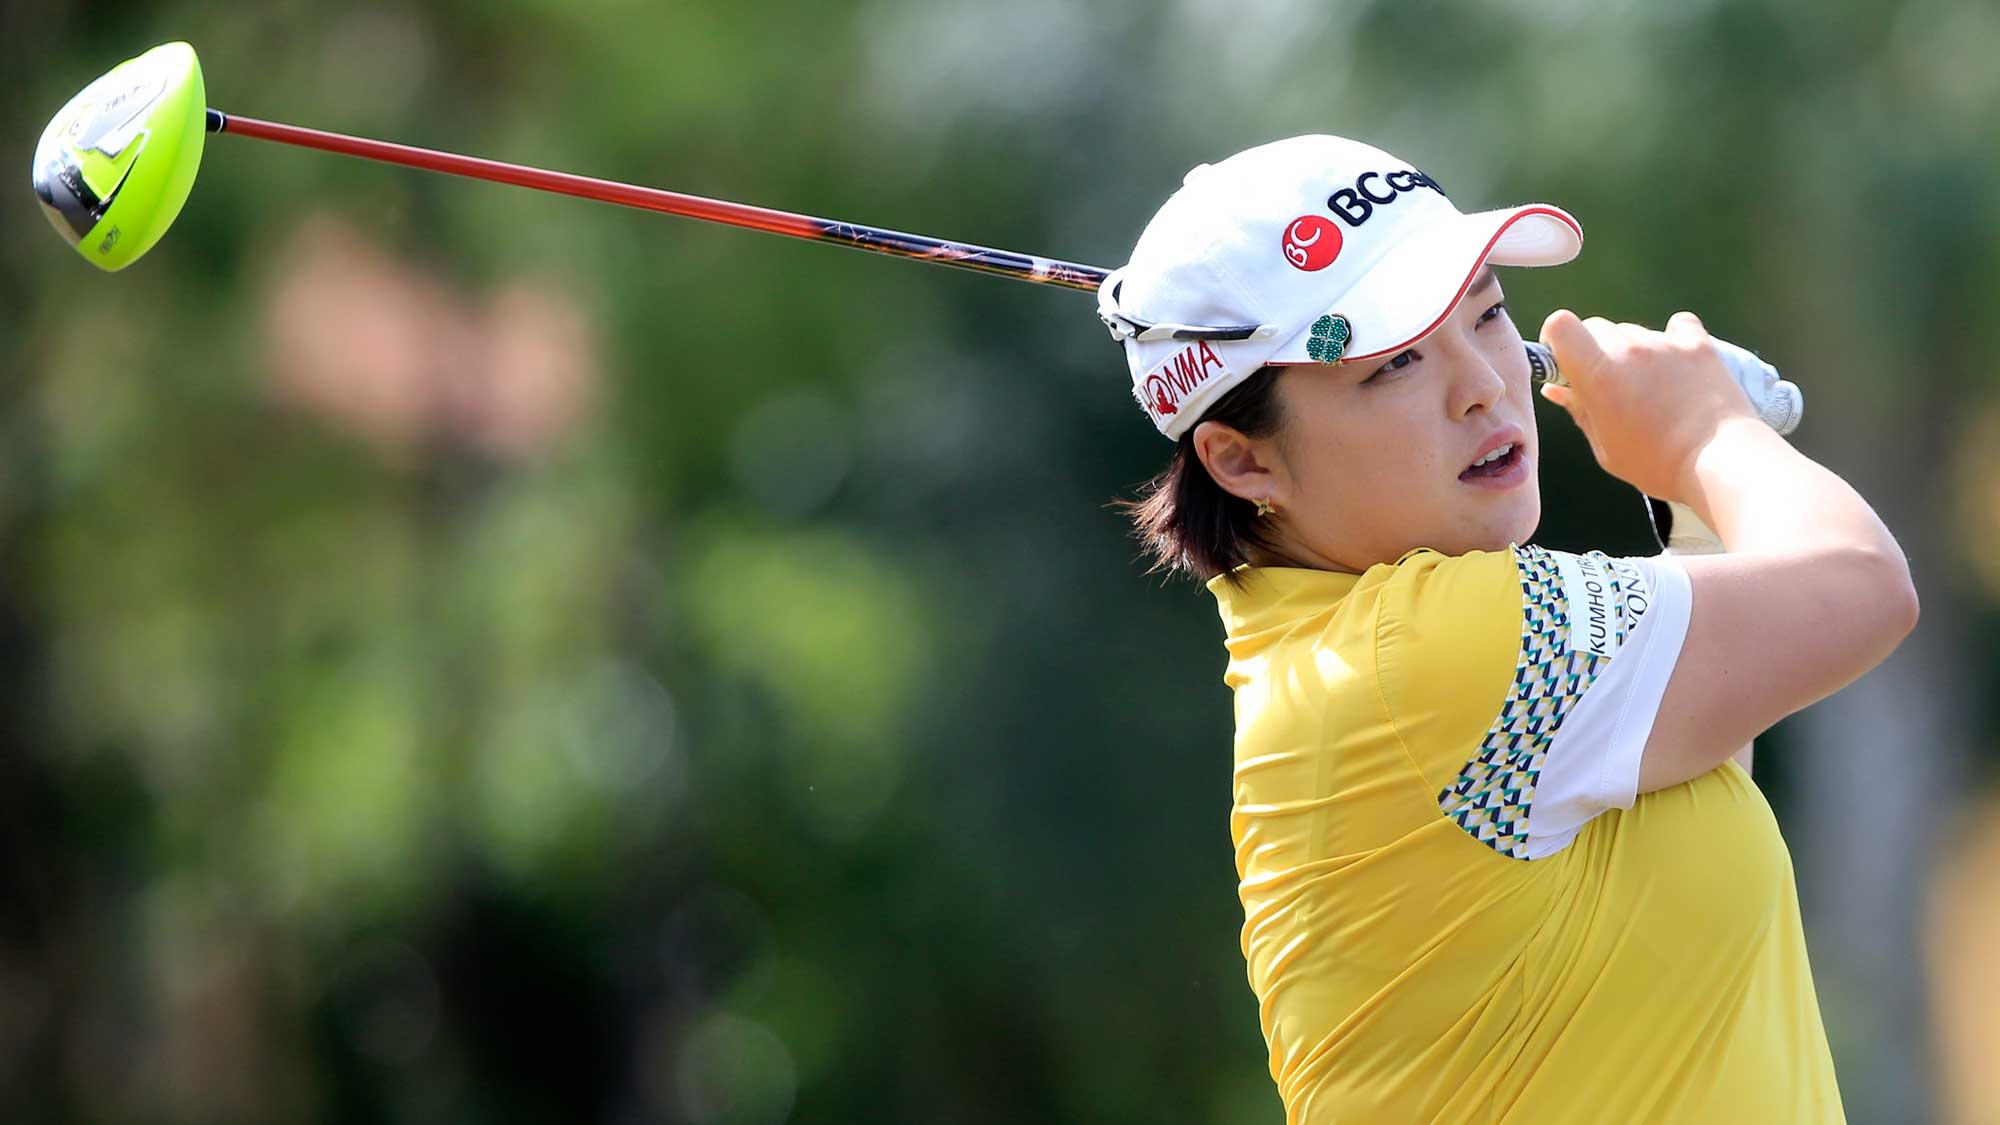 Ha Na Jang of South Korea plays a shot on the 4th hole during the final round of the CME Group Tour Championship at Tiburon Golf Club